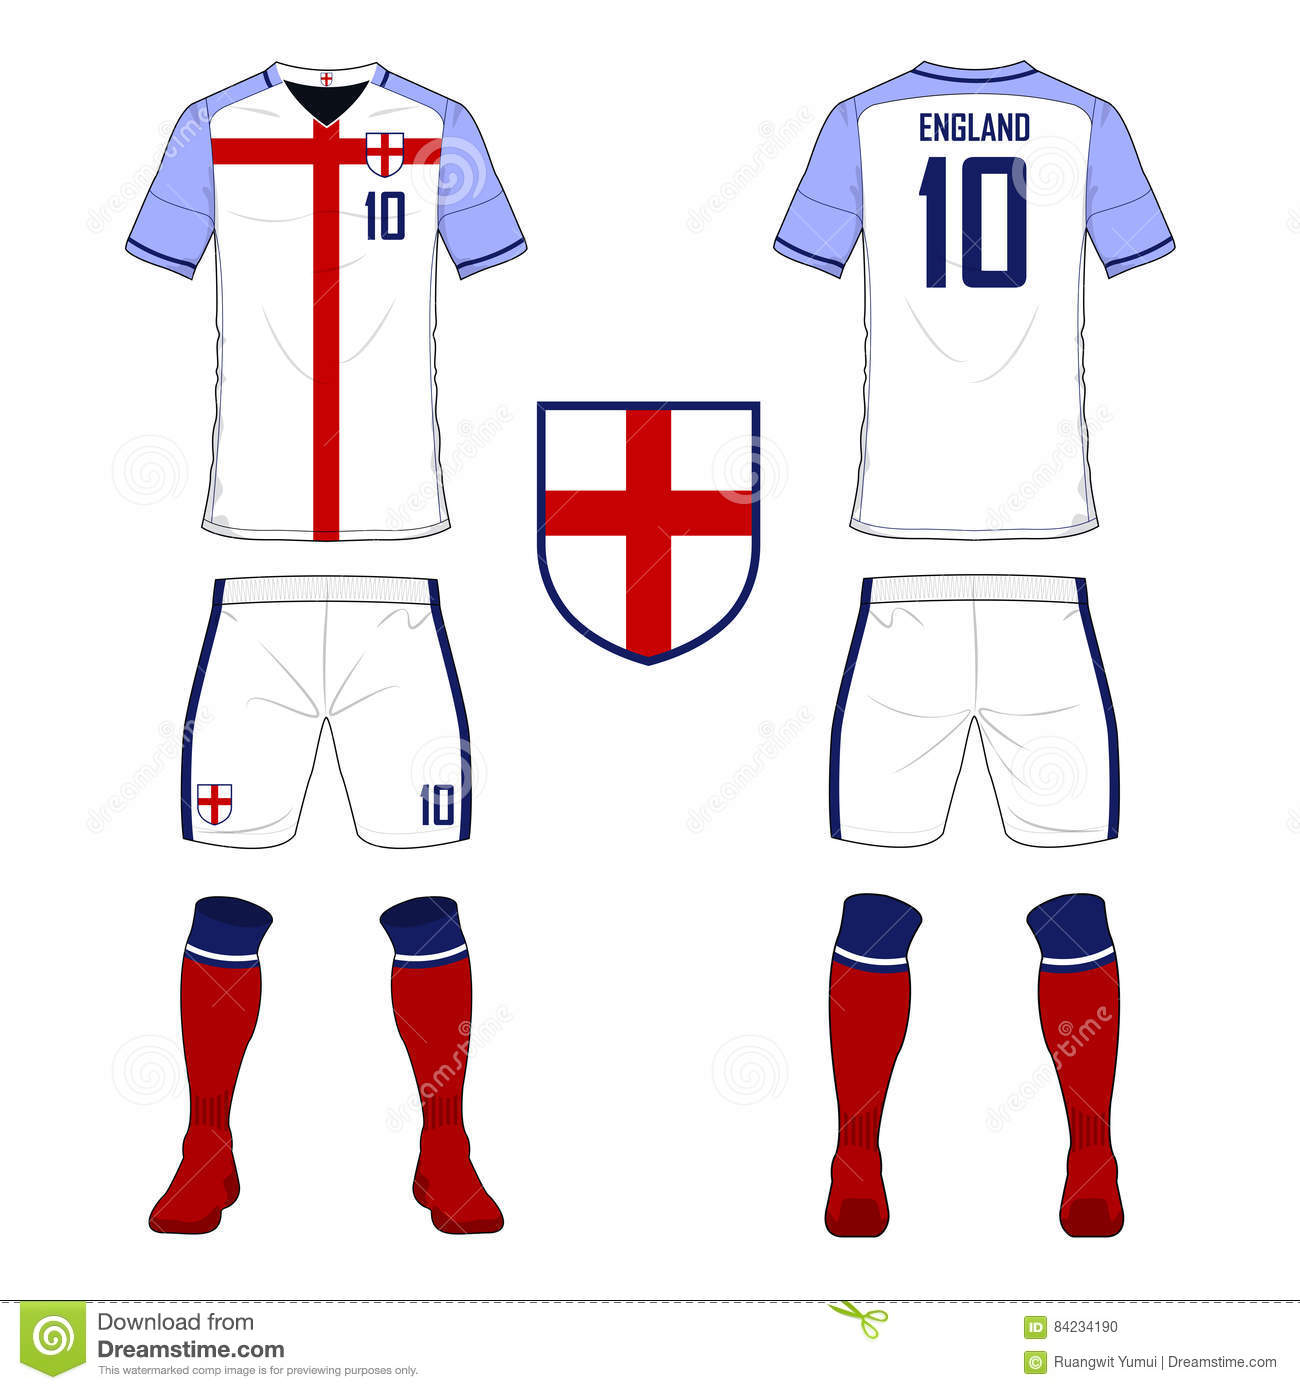 503c4e260 Set of soccer jersey or football kit template for England national football  team. Royalty-Free Vector